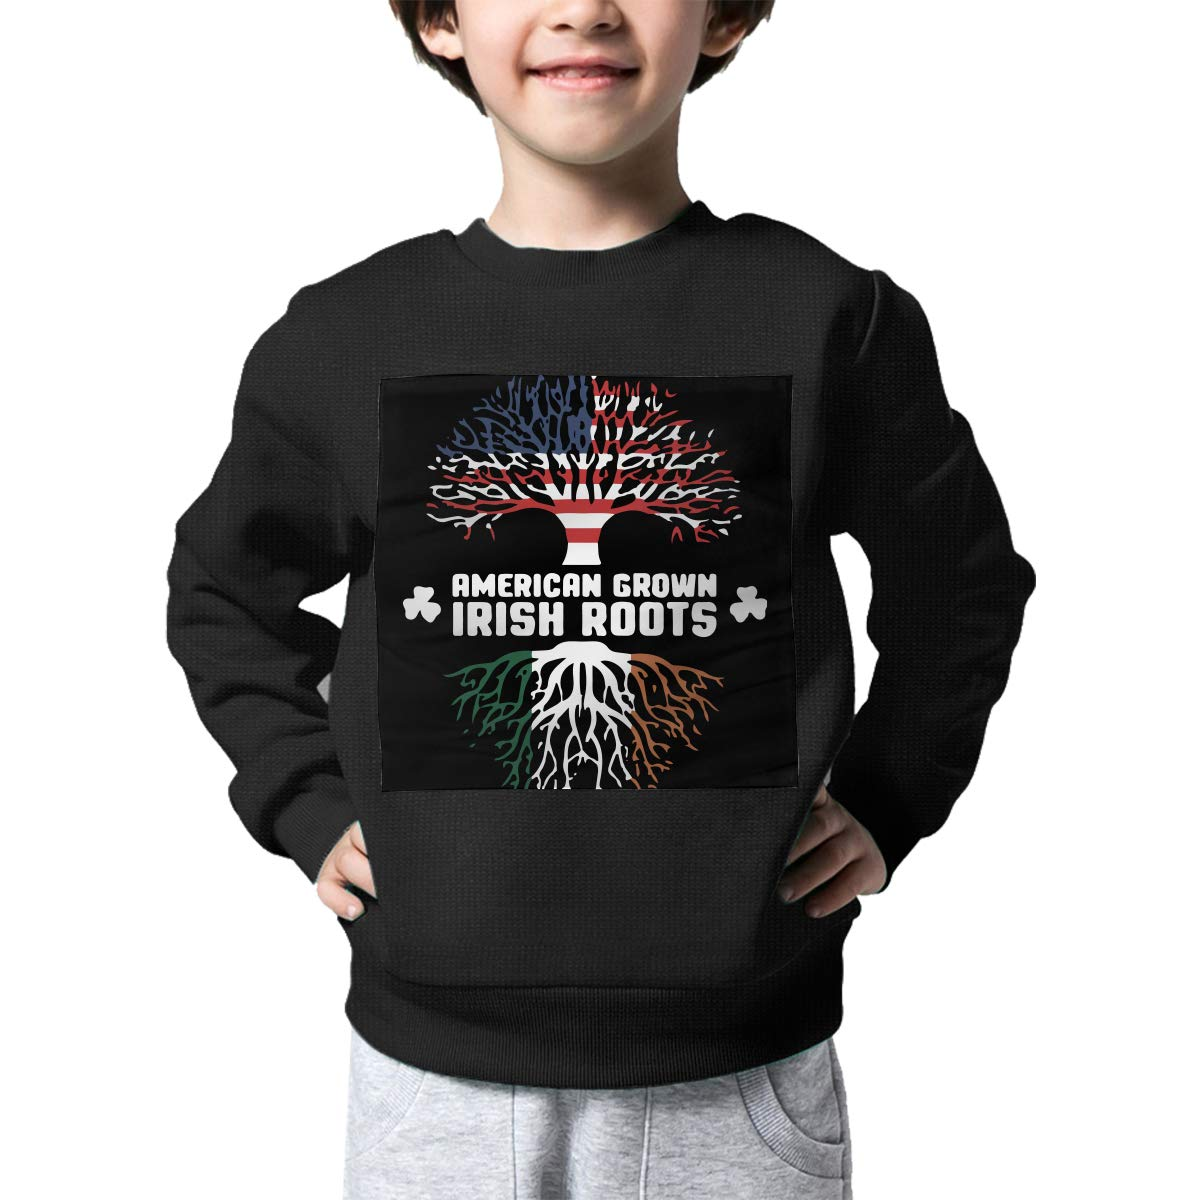 NJKM5MJ Boys Girls American Grown with Irish Roots 1 Lovely Sweaters Soft Warm Childrens Sweater